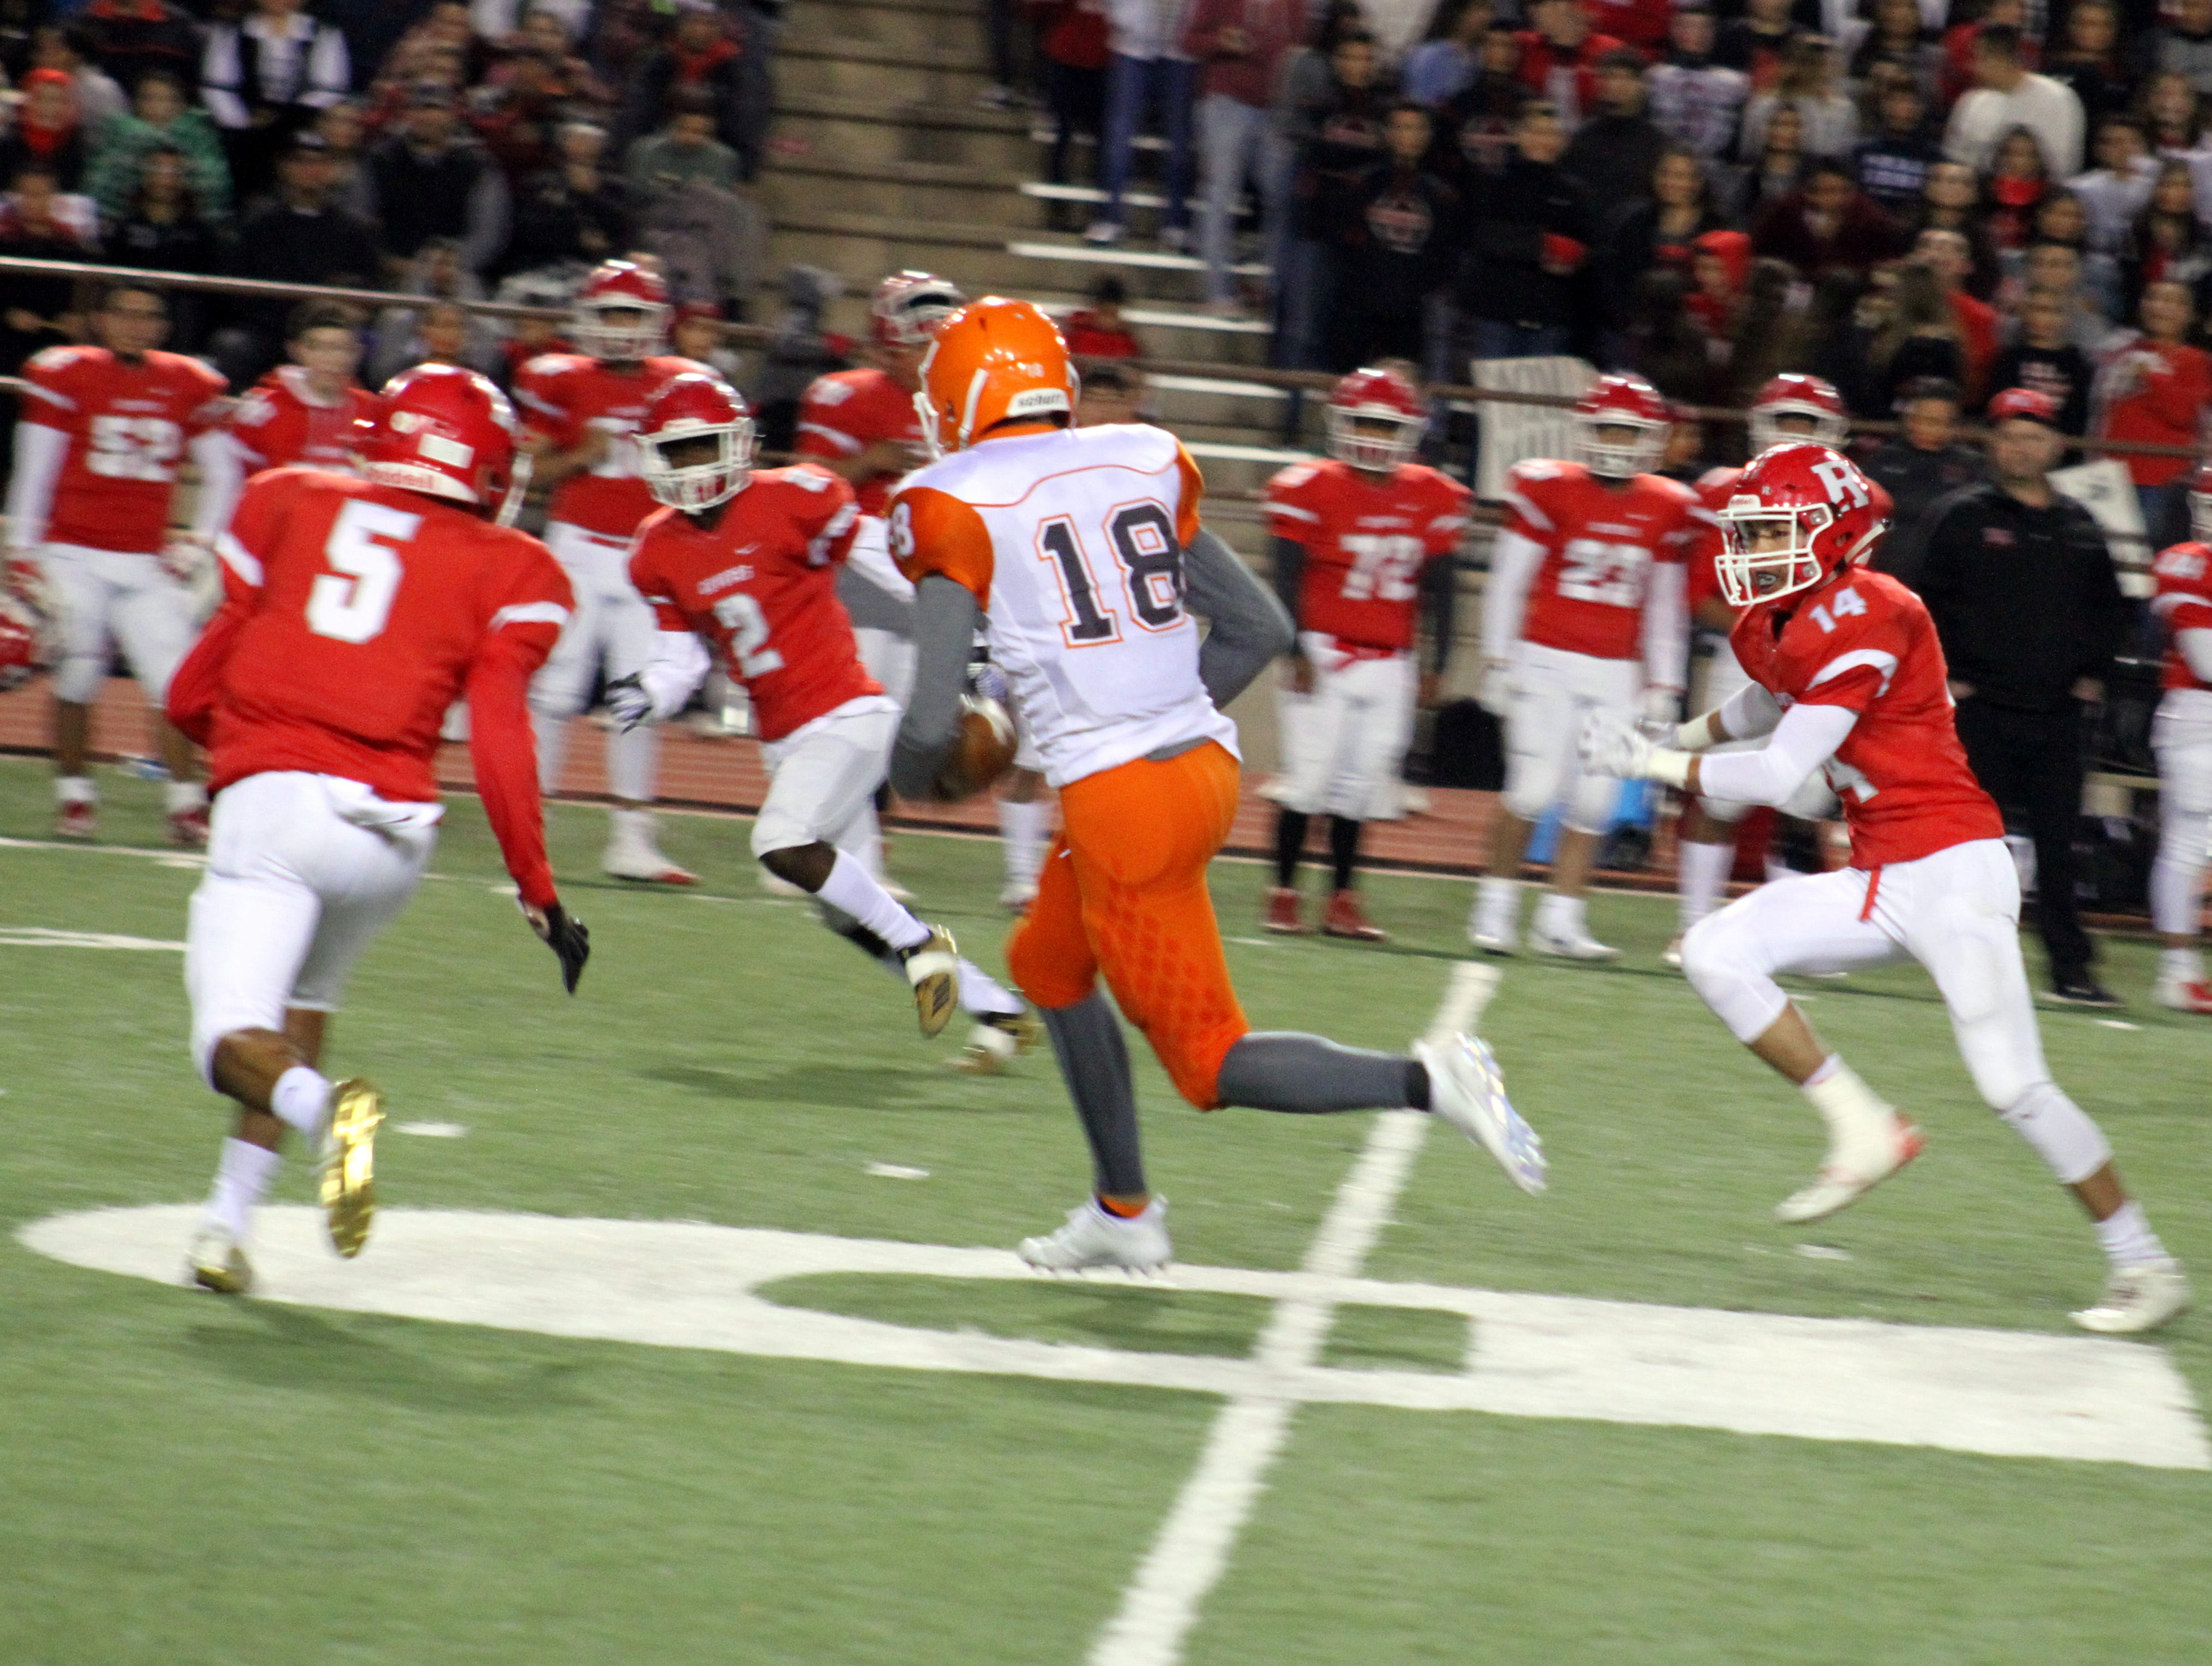 Artesia's Clay Houghtaling (18) runs between three Roswell defenders after making a catch during Friday's Class 5A semifinal game. Houghtaling finished the game with five catches for 48 yards and three rushes for 21 yards.